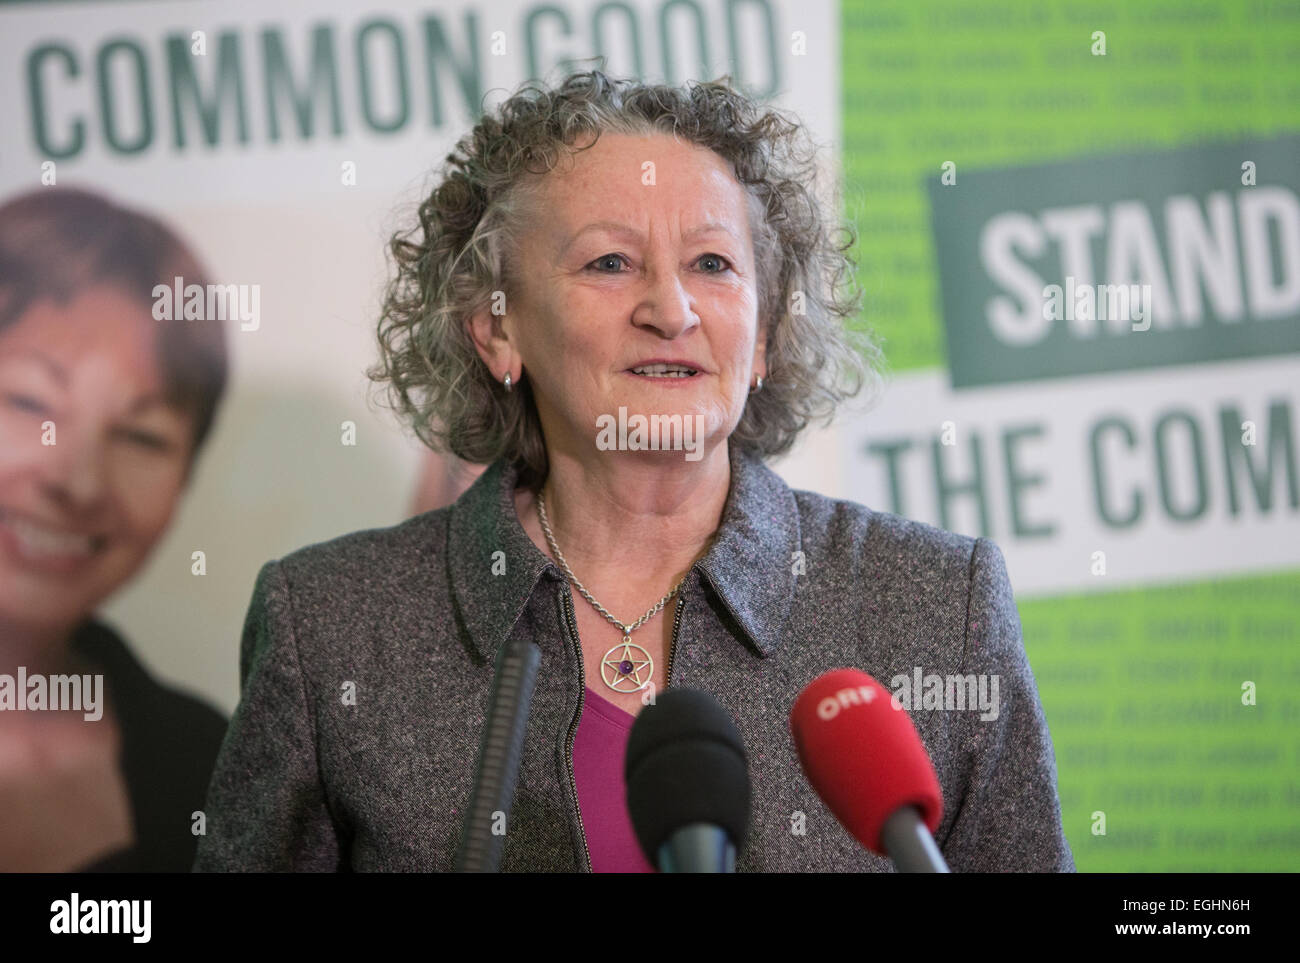 Baroness Jenny Jones of Mouselcoomb speaking at the launch of the Green party's election campaign - Stock Image